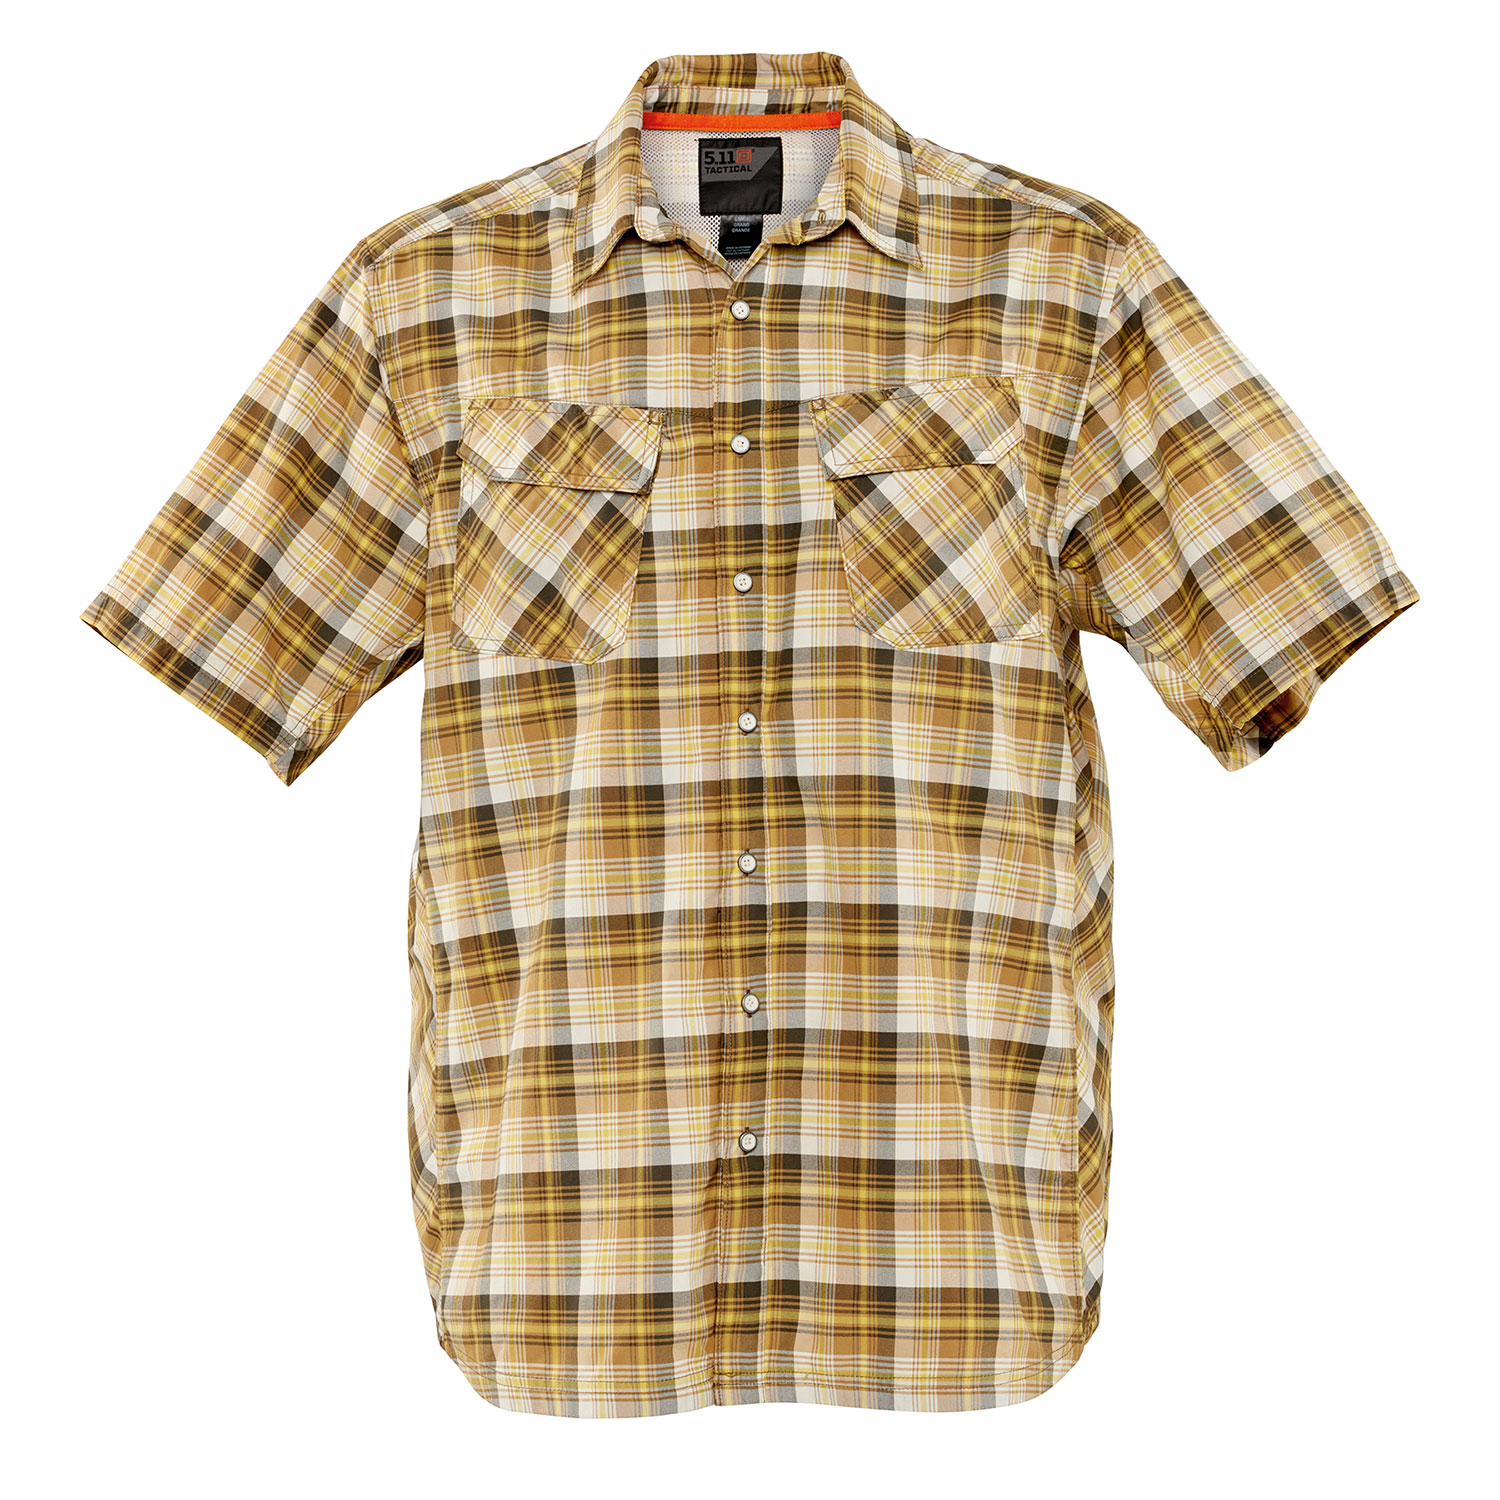 5.11 Tactical Slipstream Covert Short Sleeve Shirt